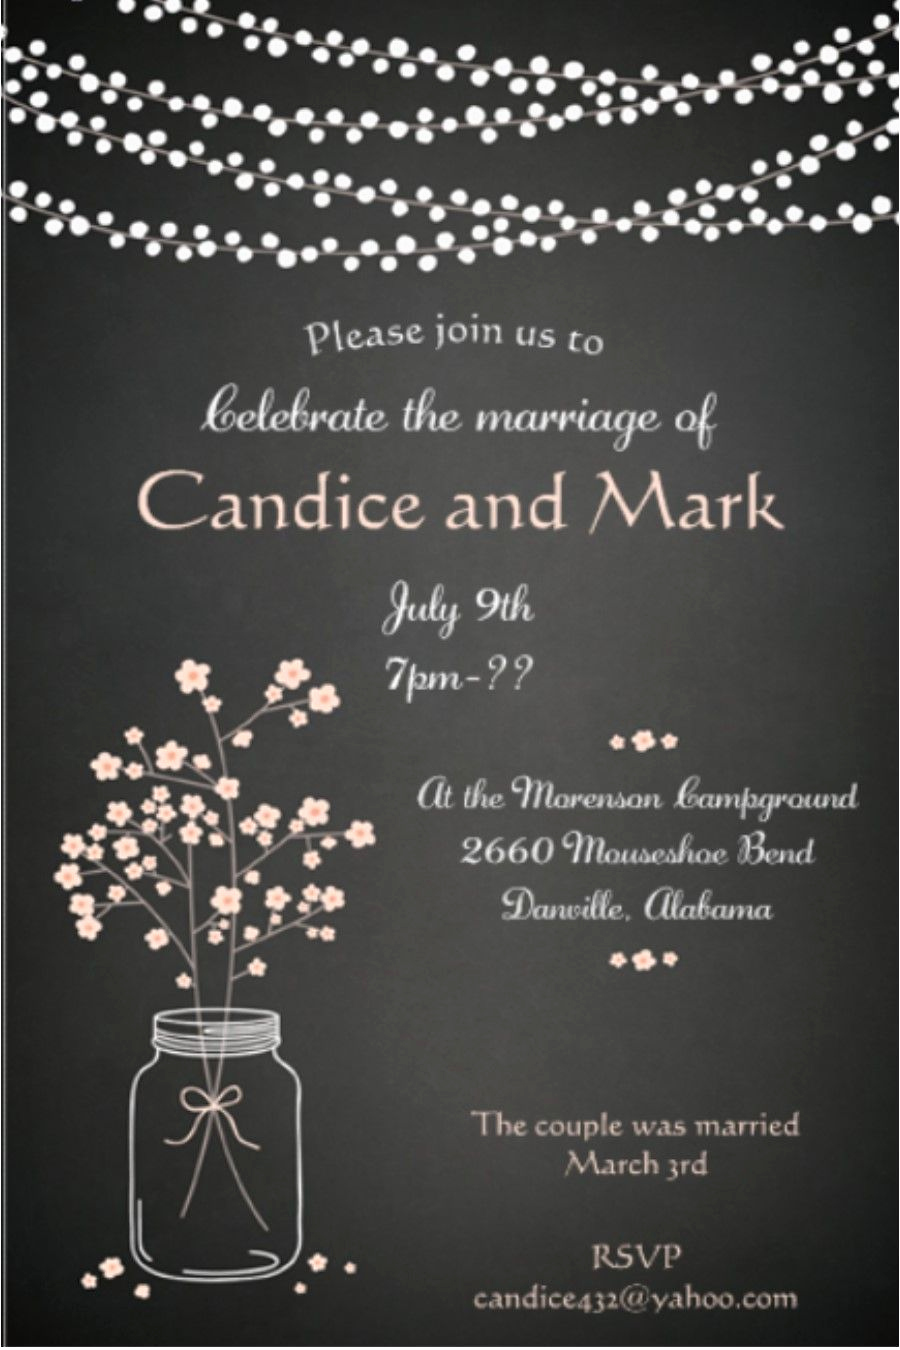 Wedding Reception Invitation Ideas Unique after the Wedding Party Invitations or Elopement Party